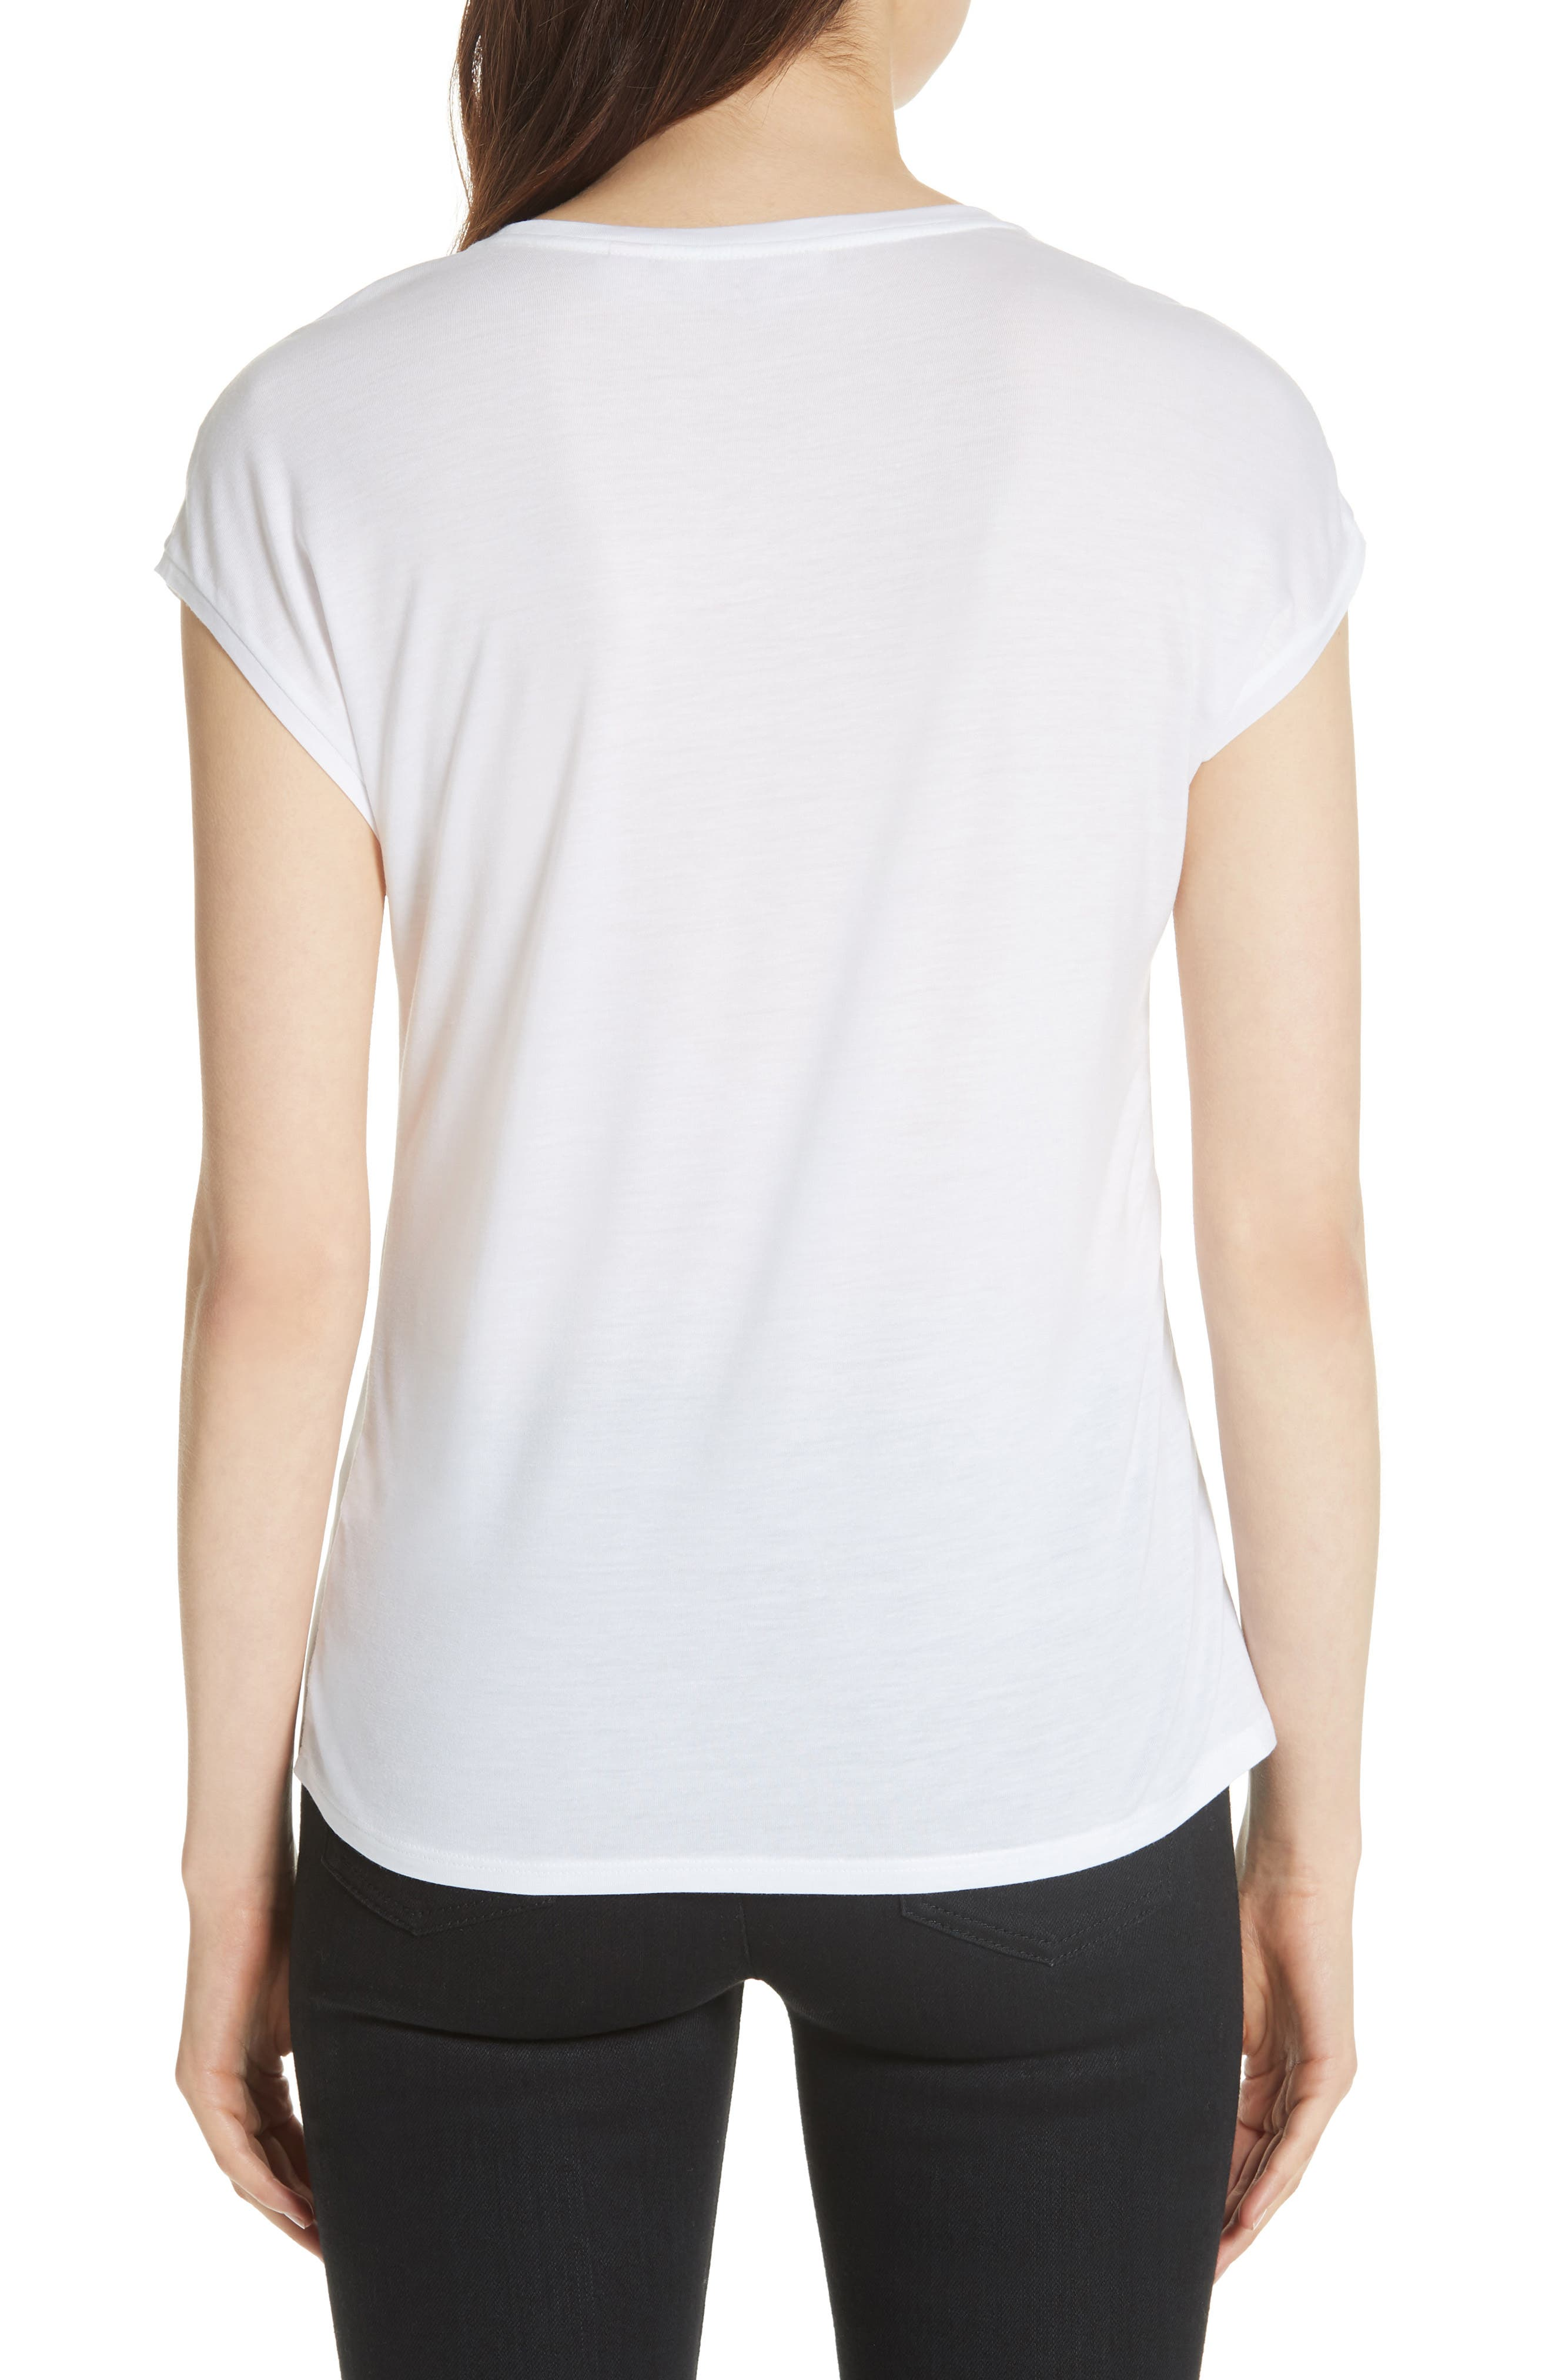 Anee Tranquility Woven Front Top,                             Alternate thumbnail 2, color,                             110